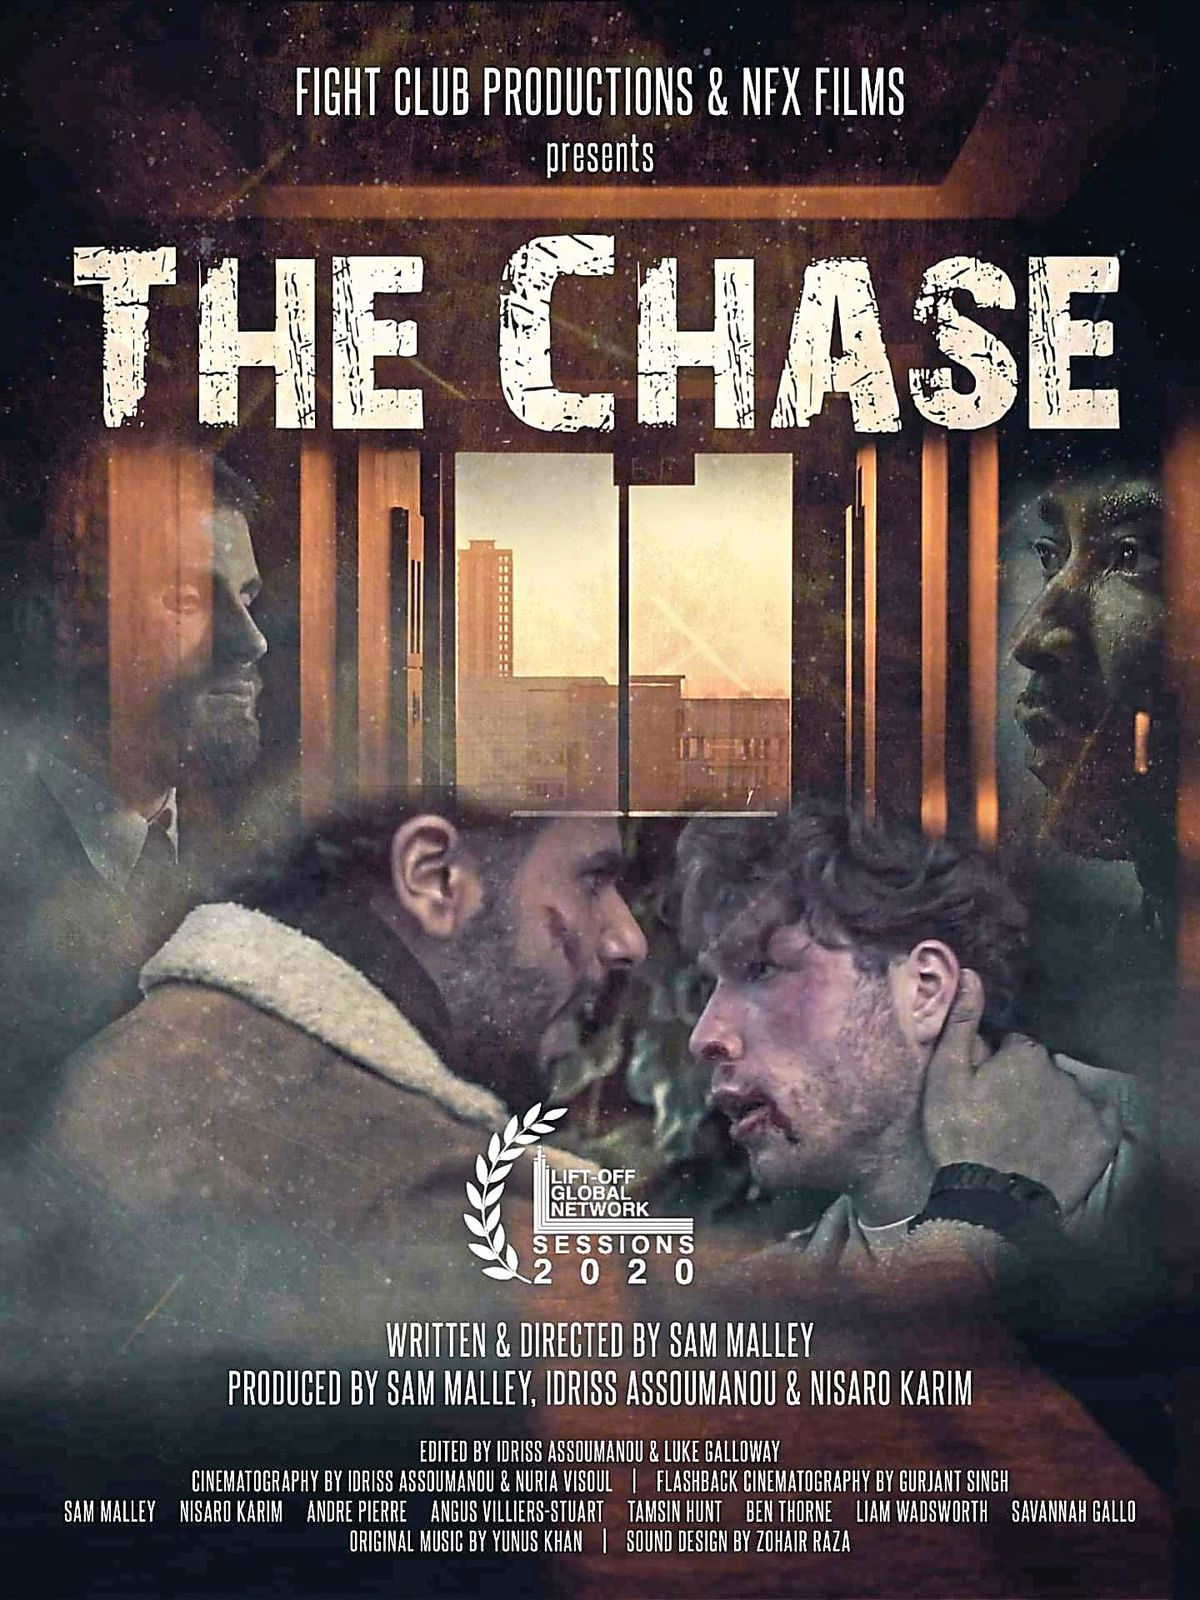 The Chase has received five-star reviews